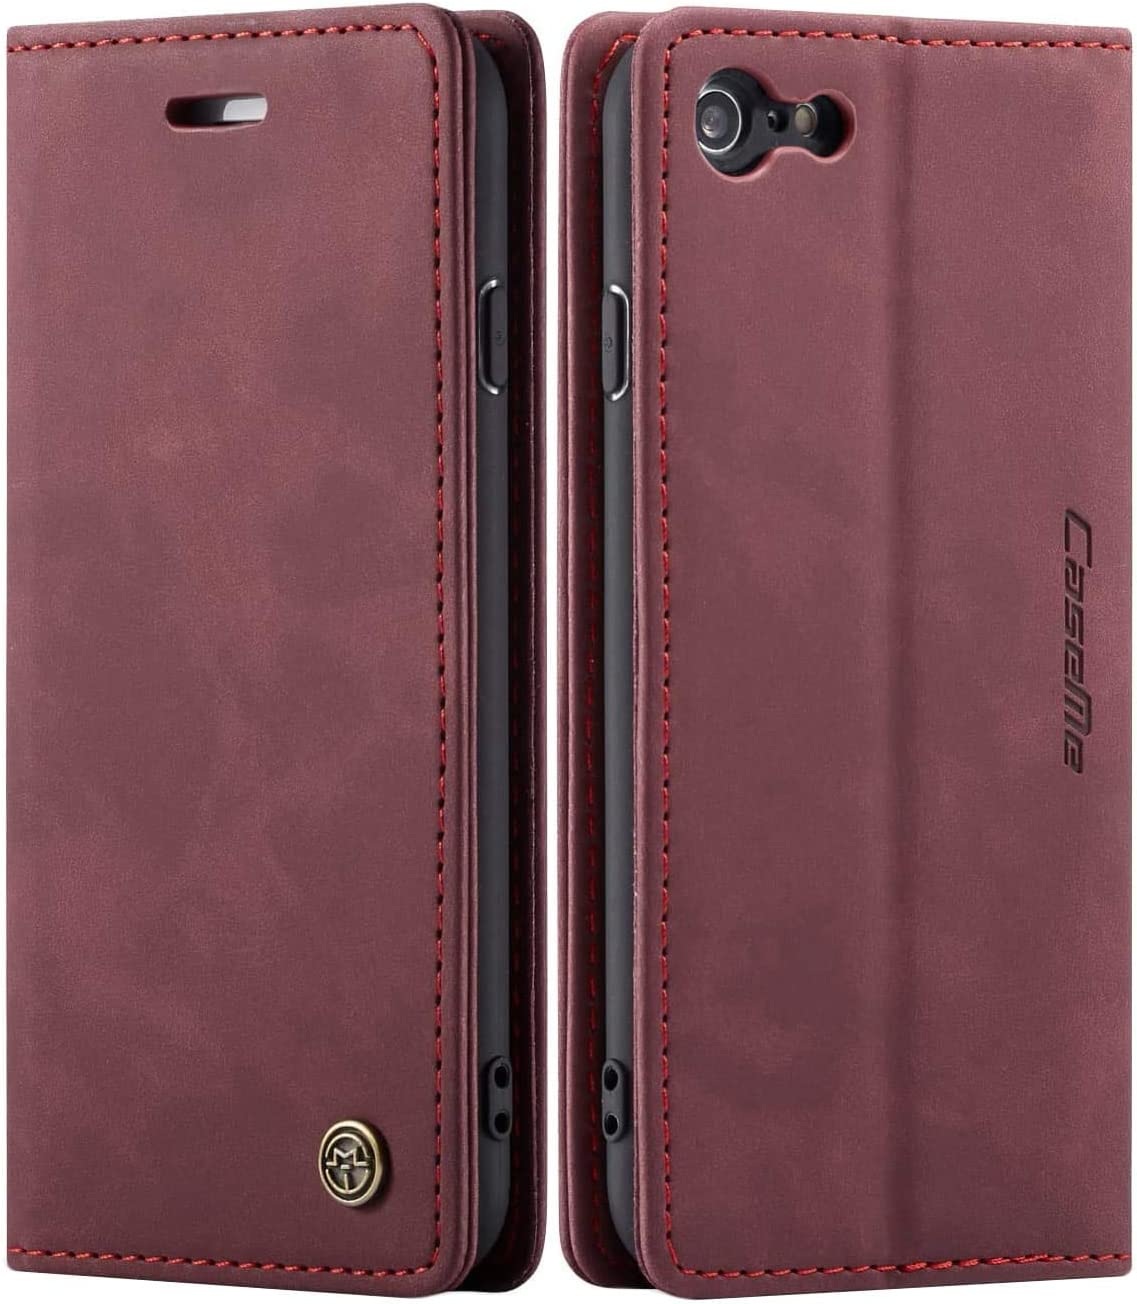 iPhone 6 Wallet Case iPhone 6S Leather Case, SINIANL Folio Case with Kickstand Credit Card Holder Magnetic Closure Folding Flip Book Cover Case for Apple iPhone 6 iPhone 6S - Wine Red